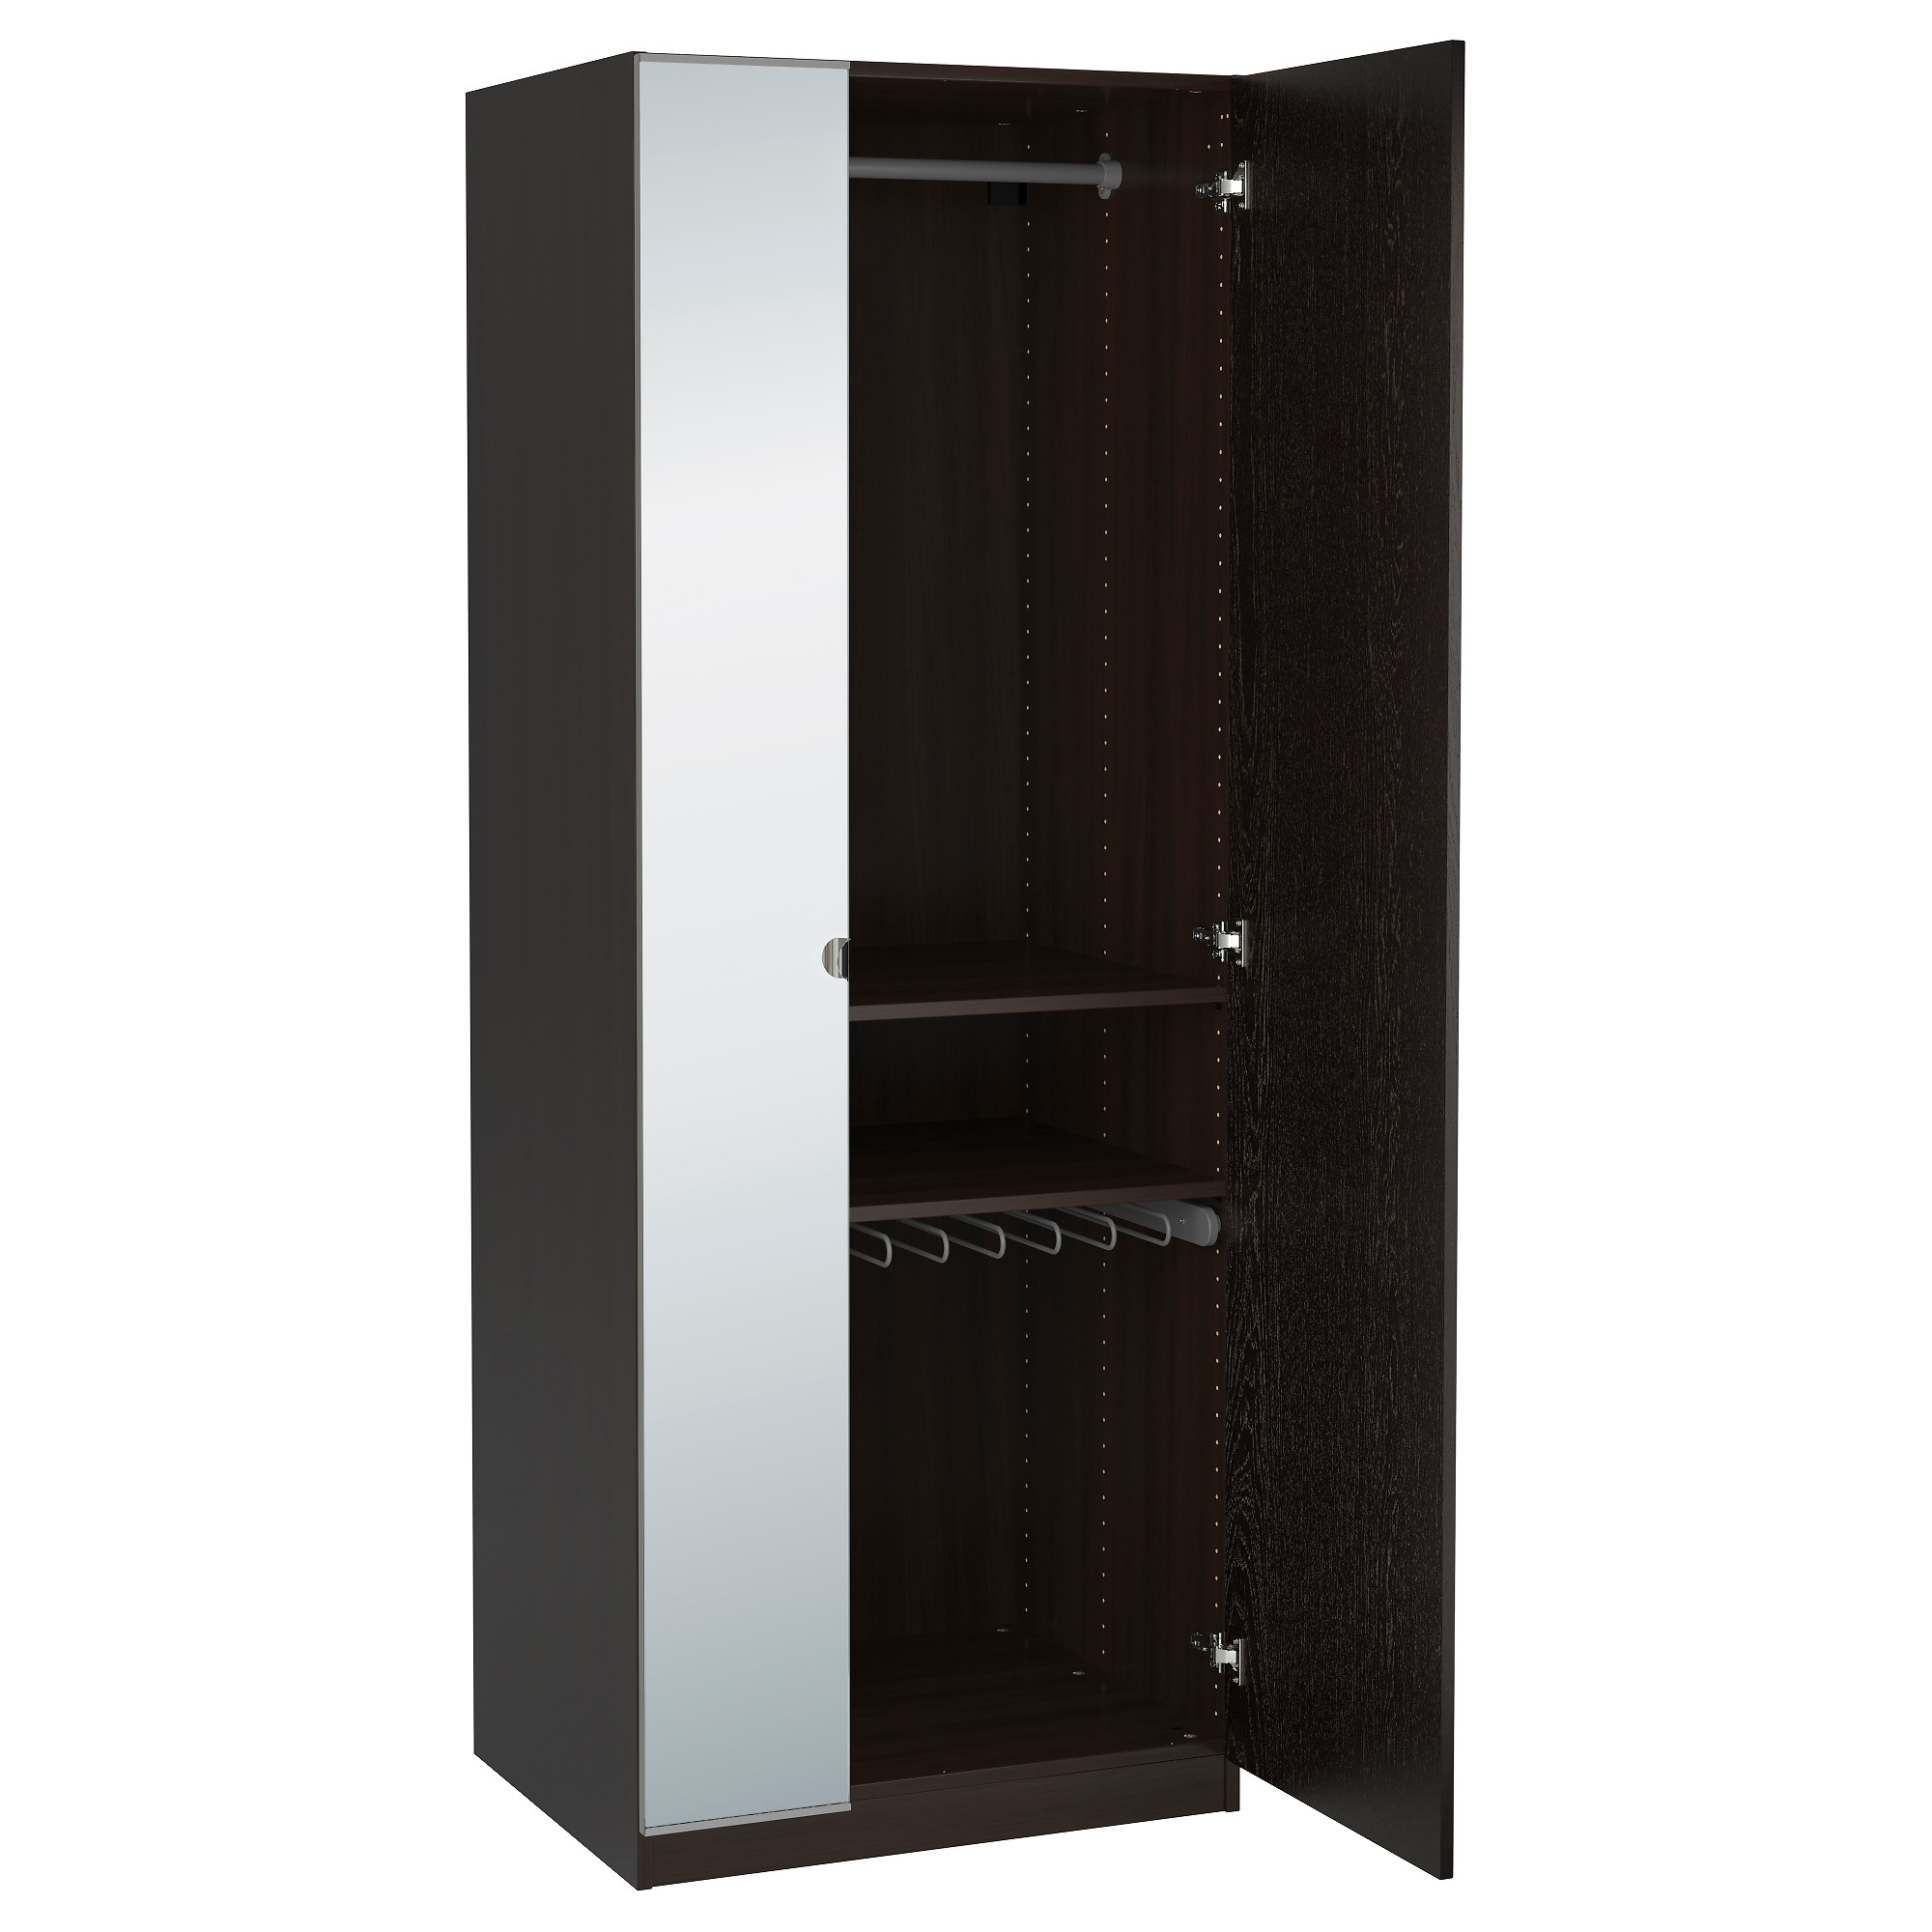 Single Door Wardrobe With Drawers White Ikea Wooden Black Elegant With Regard To Most Recent Black Single Door Wardrobes (View 14 of 15)